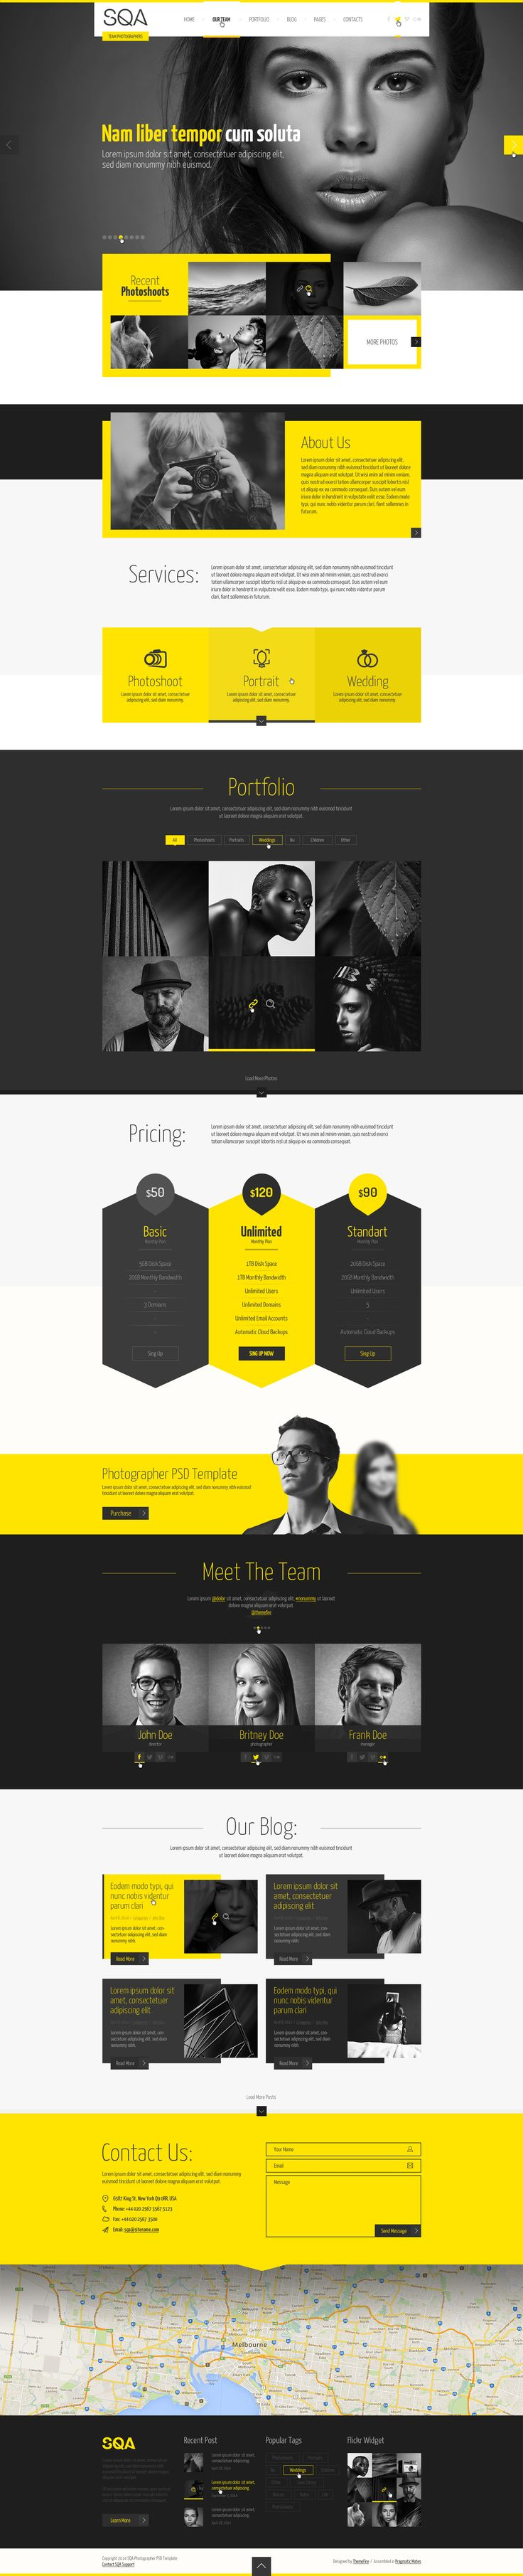 best website images on pinterest web layout design web and